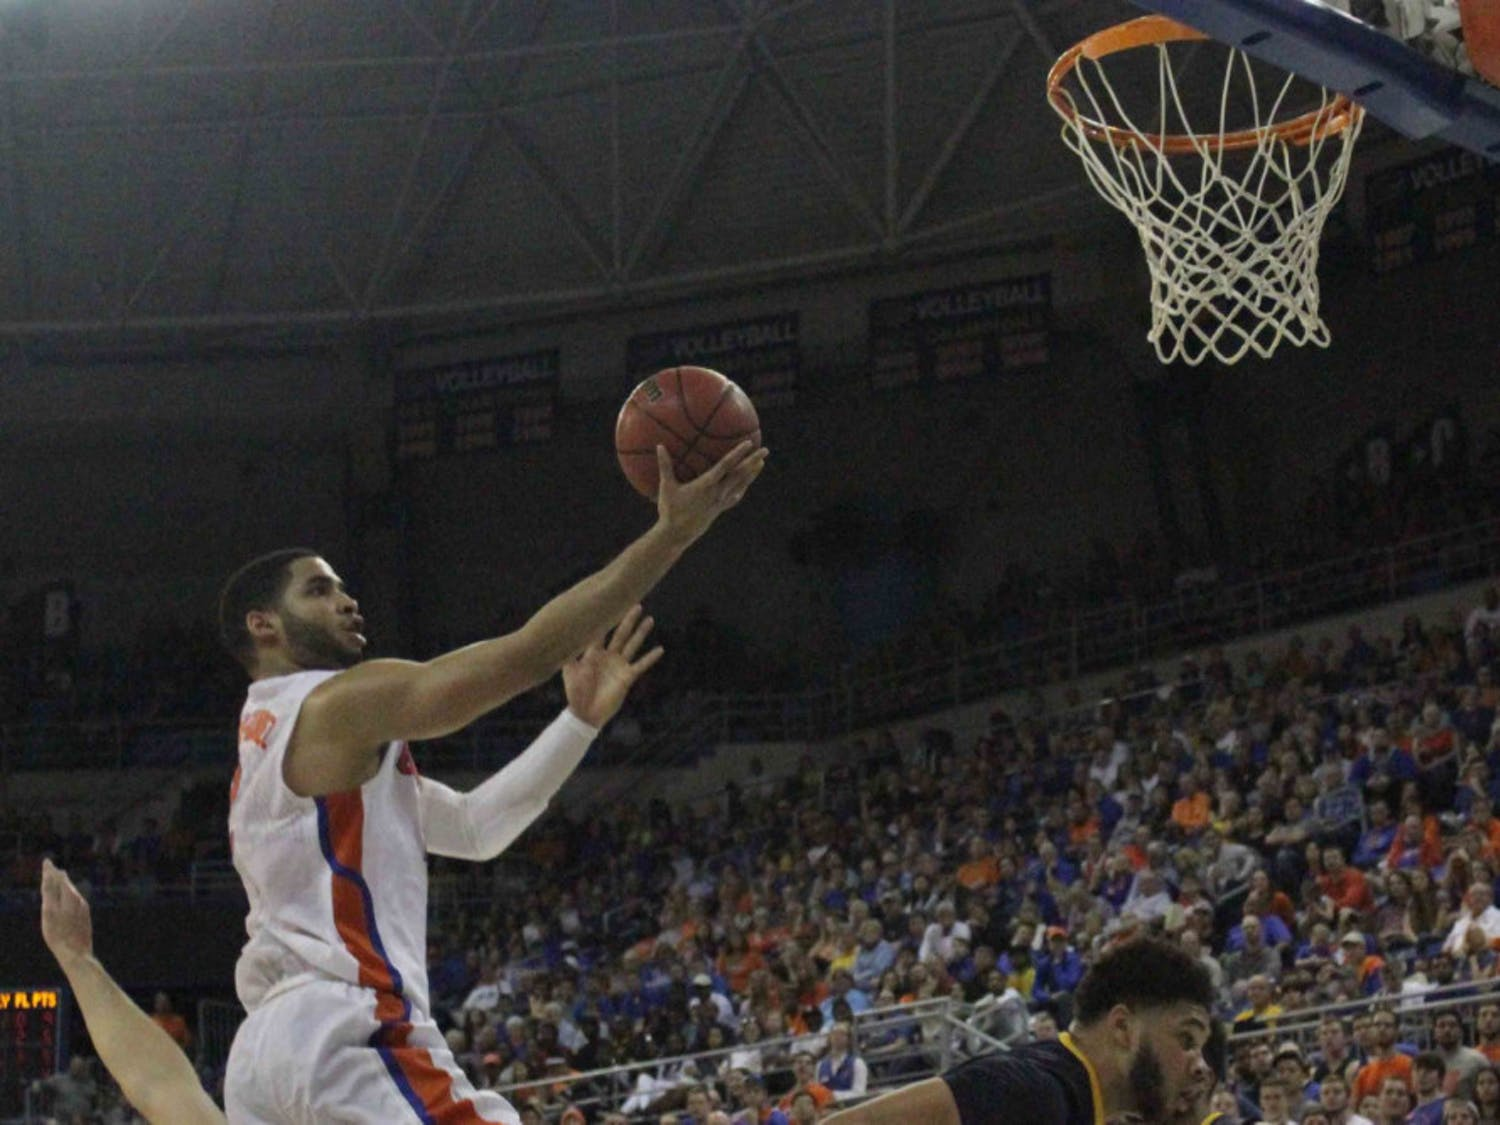 Brandone Francis-Ramirez goes for a layup during Florida's win over West Virginia on Jan. 30, 2016, in the O'Connell Center.